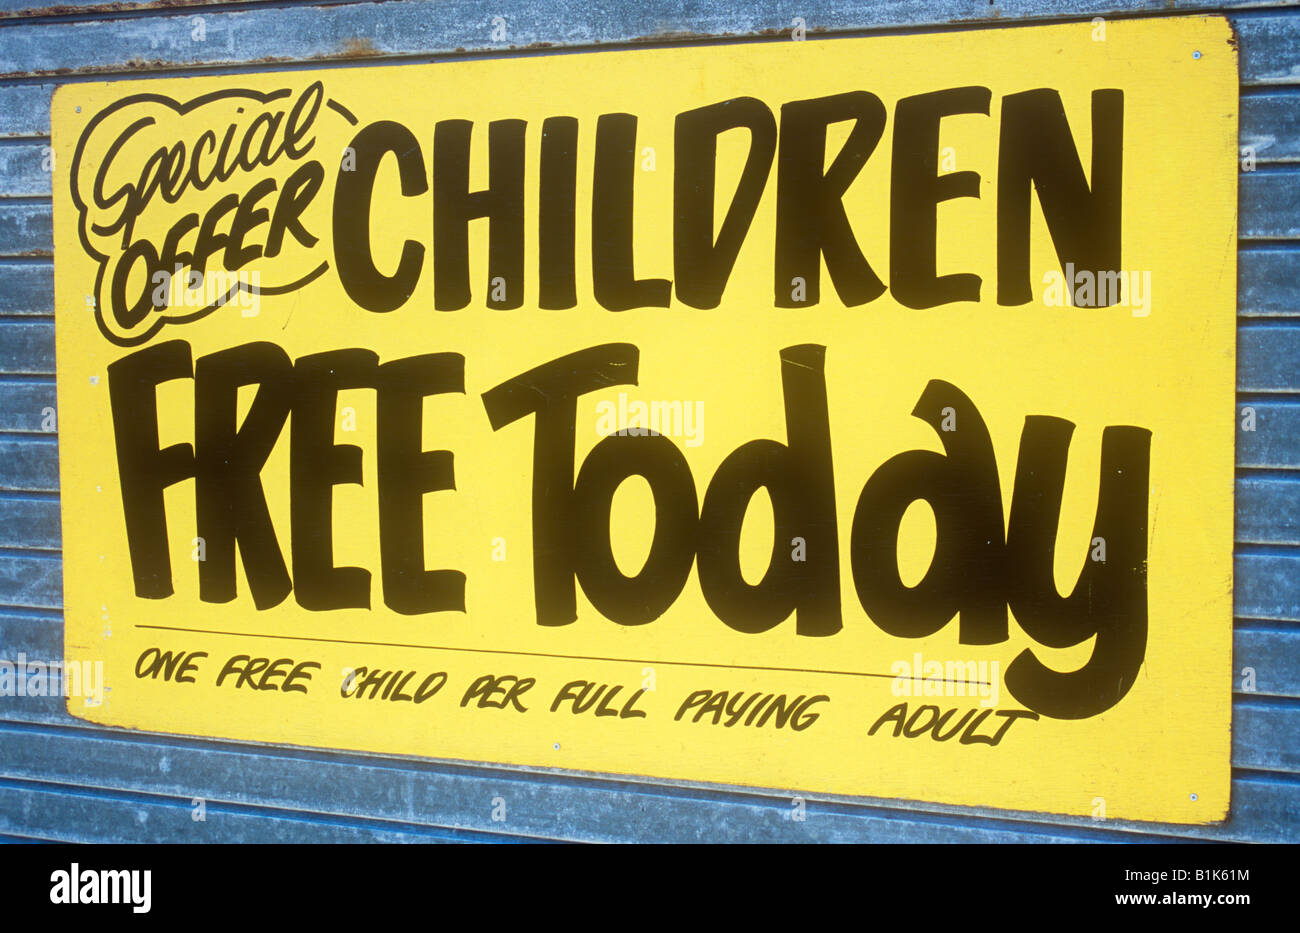 Signwritten notice black on yellow Special offer Children free today then in small writing One free child per full - Stock Image